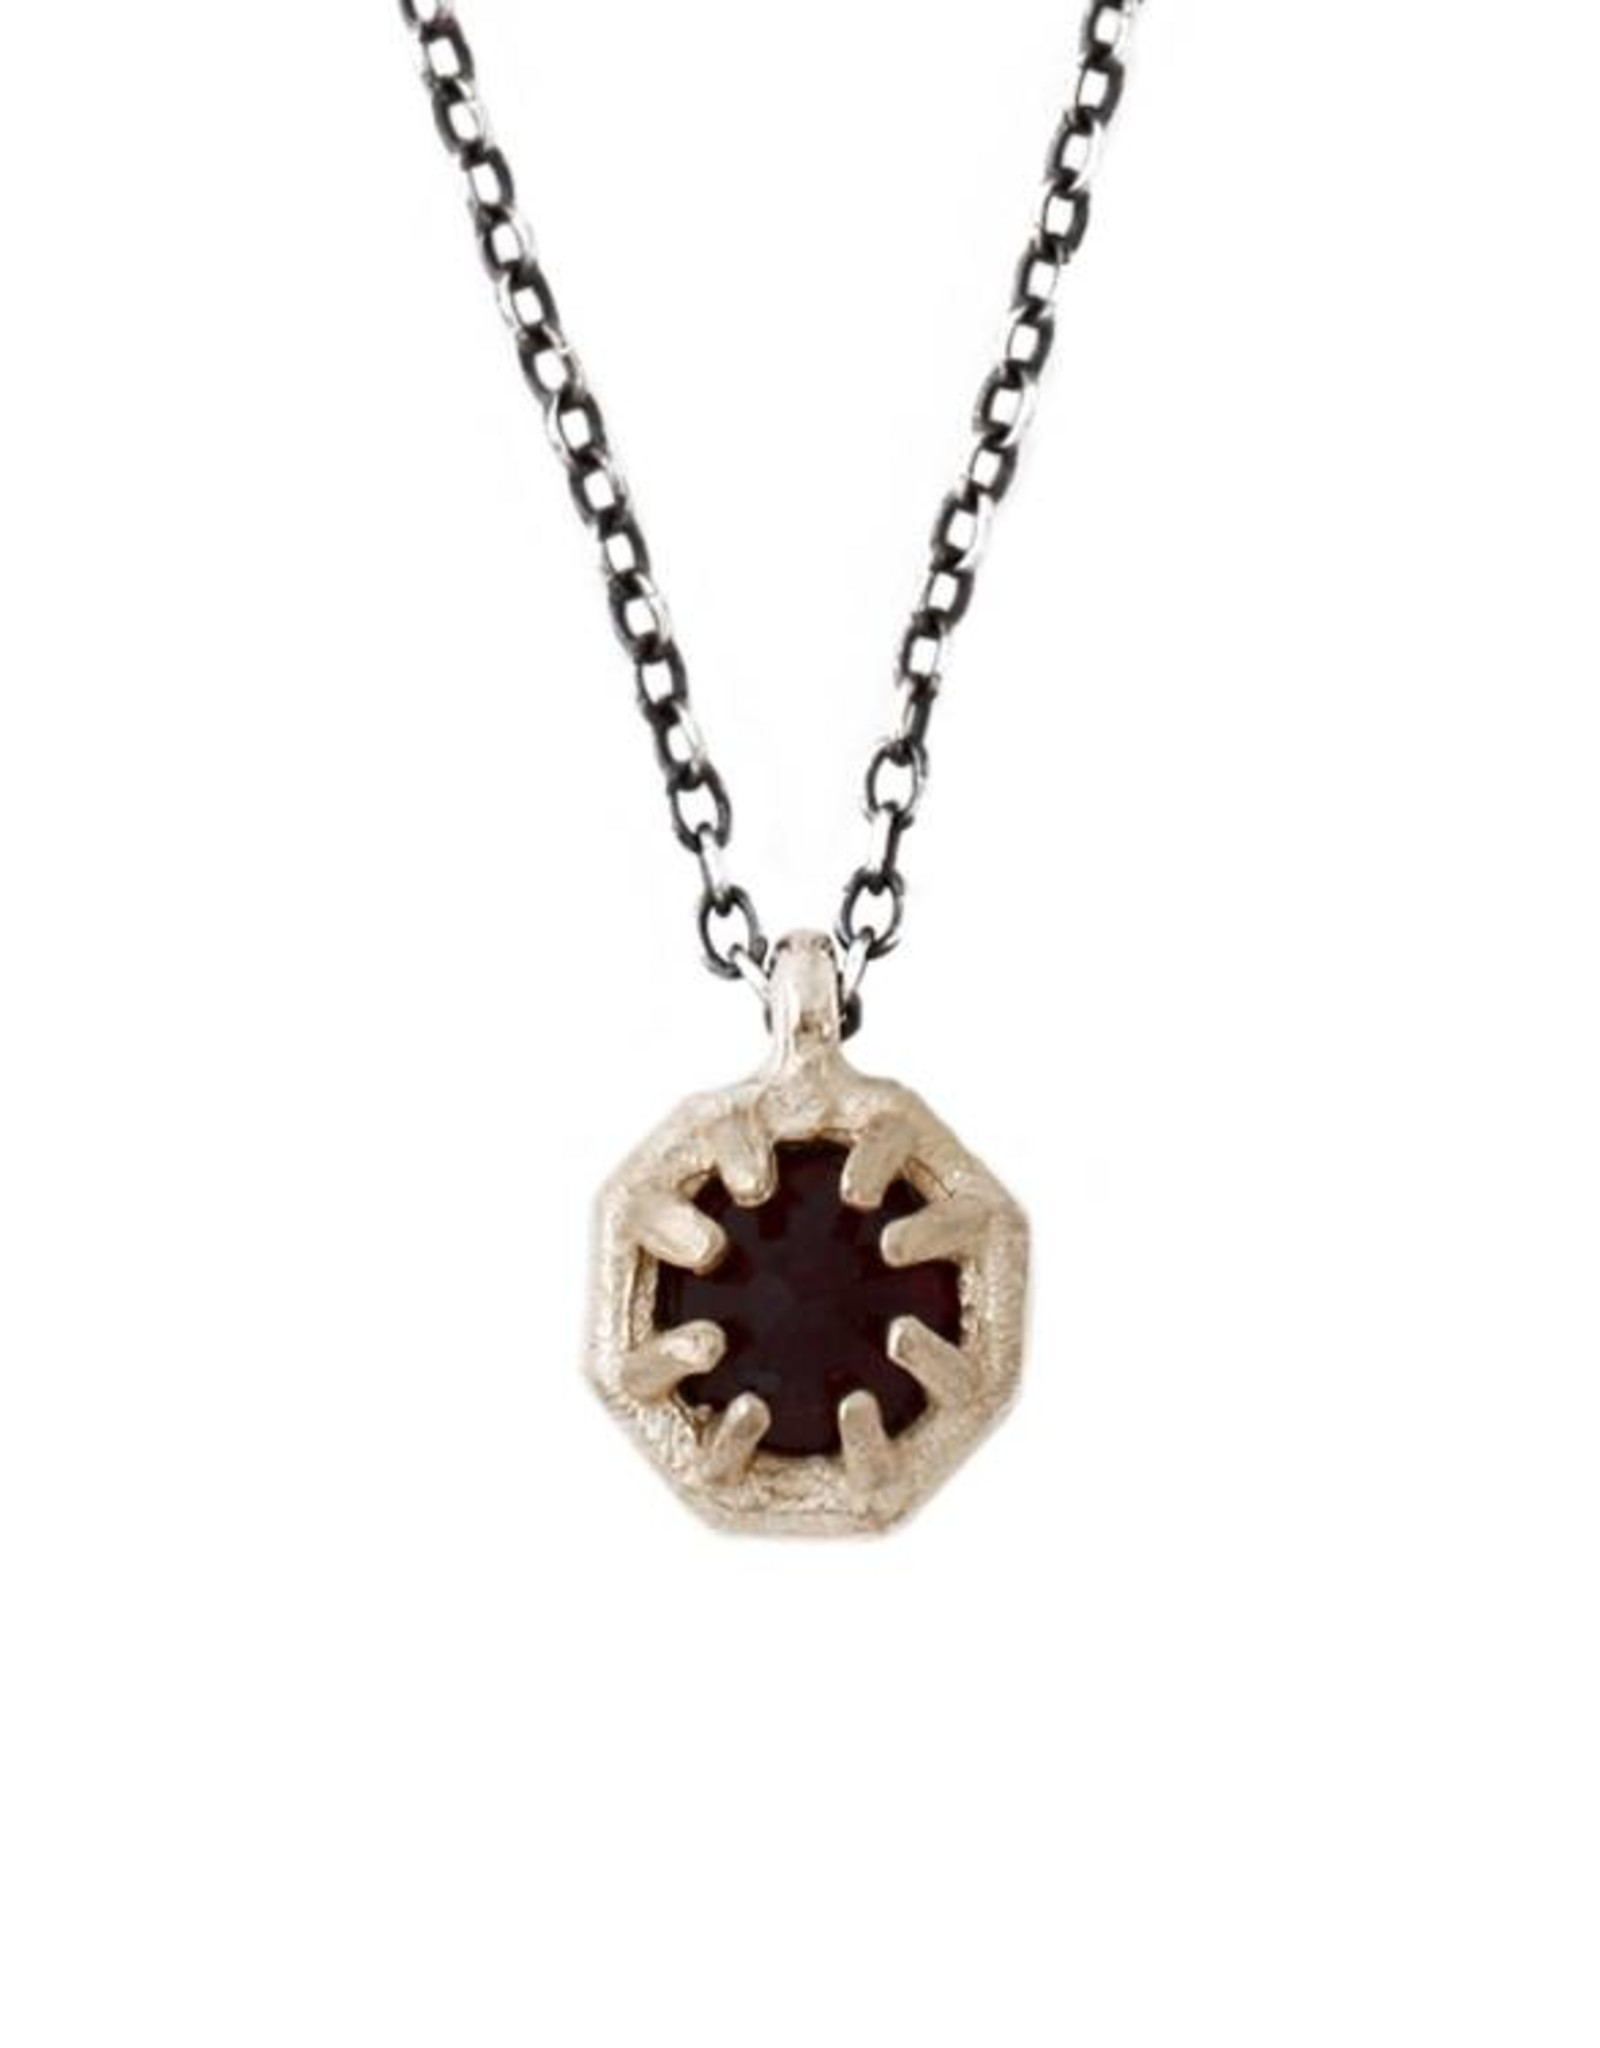 Lauren Wolf Jewelry Tiny Gold Octagon Necklace - Black Spinel